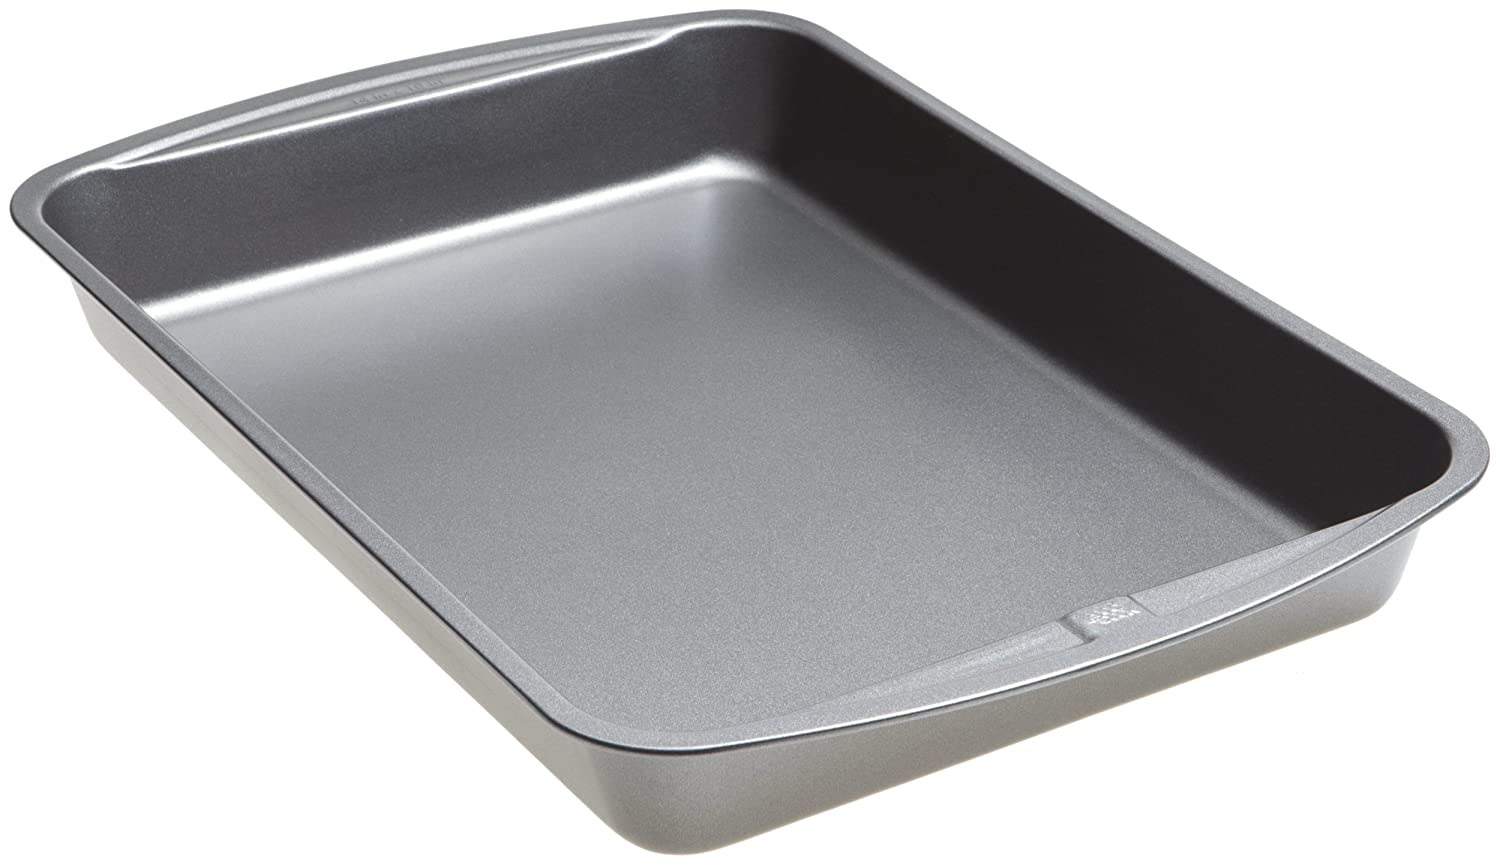 Good Cook 13 Inch x 9 Inch Bake & Roast Pan 04010